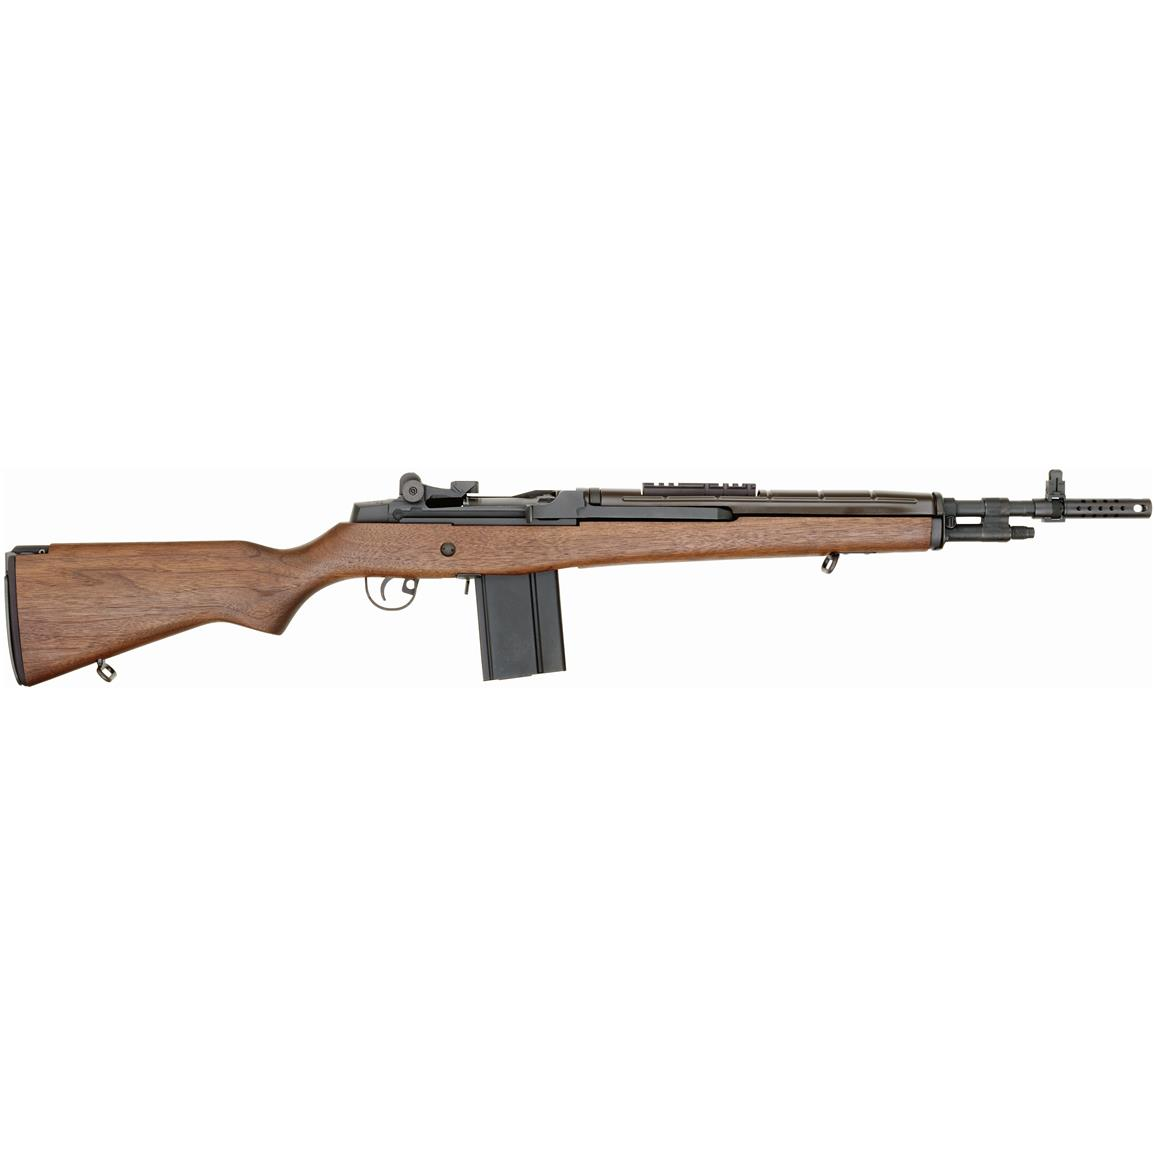 Springfield M1A Scout Squad, Semi-automatic, .308 Winchester, Centerfire, AA9122, 706397004122